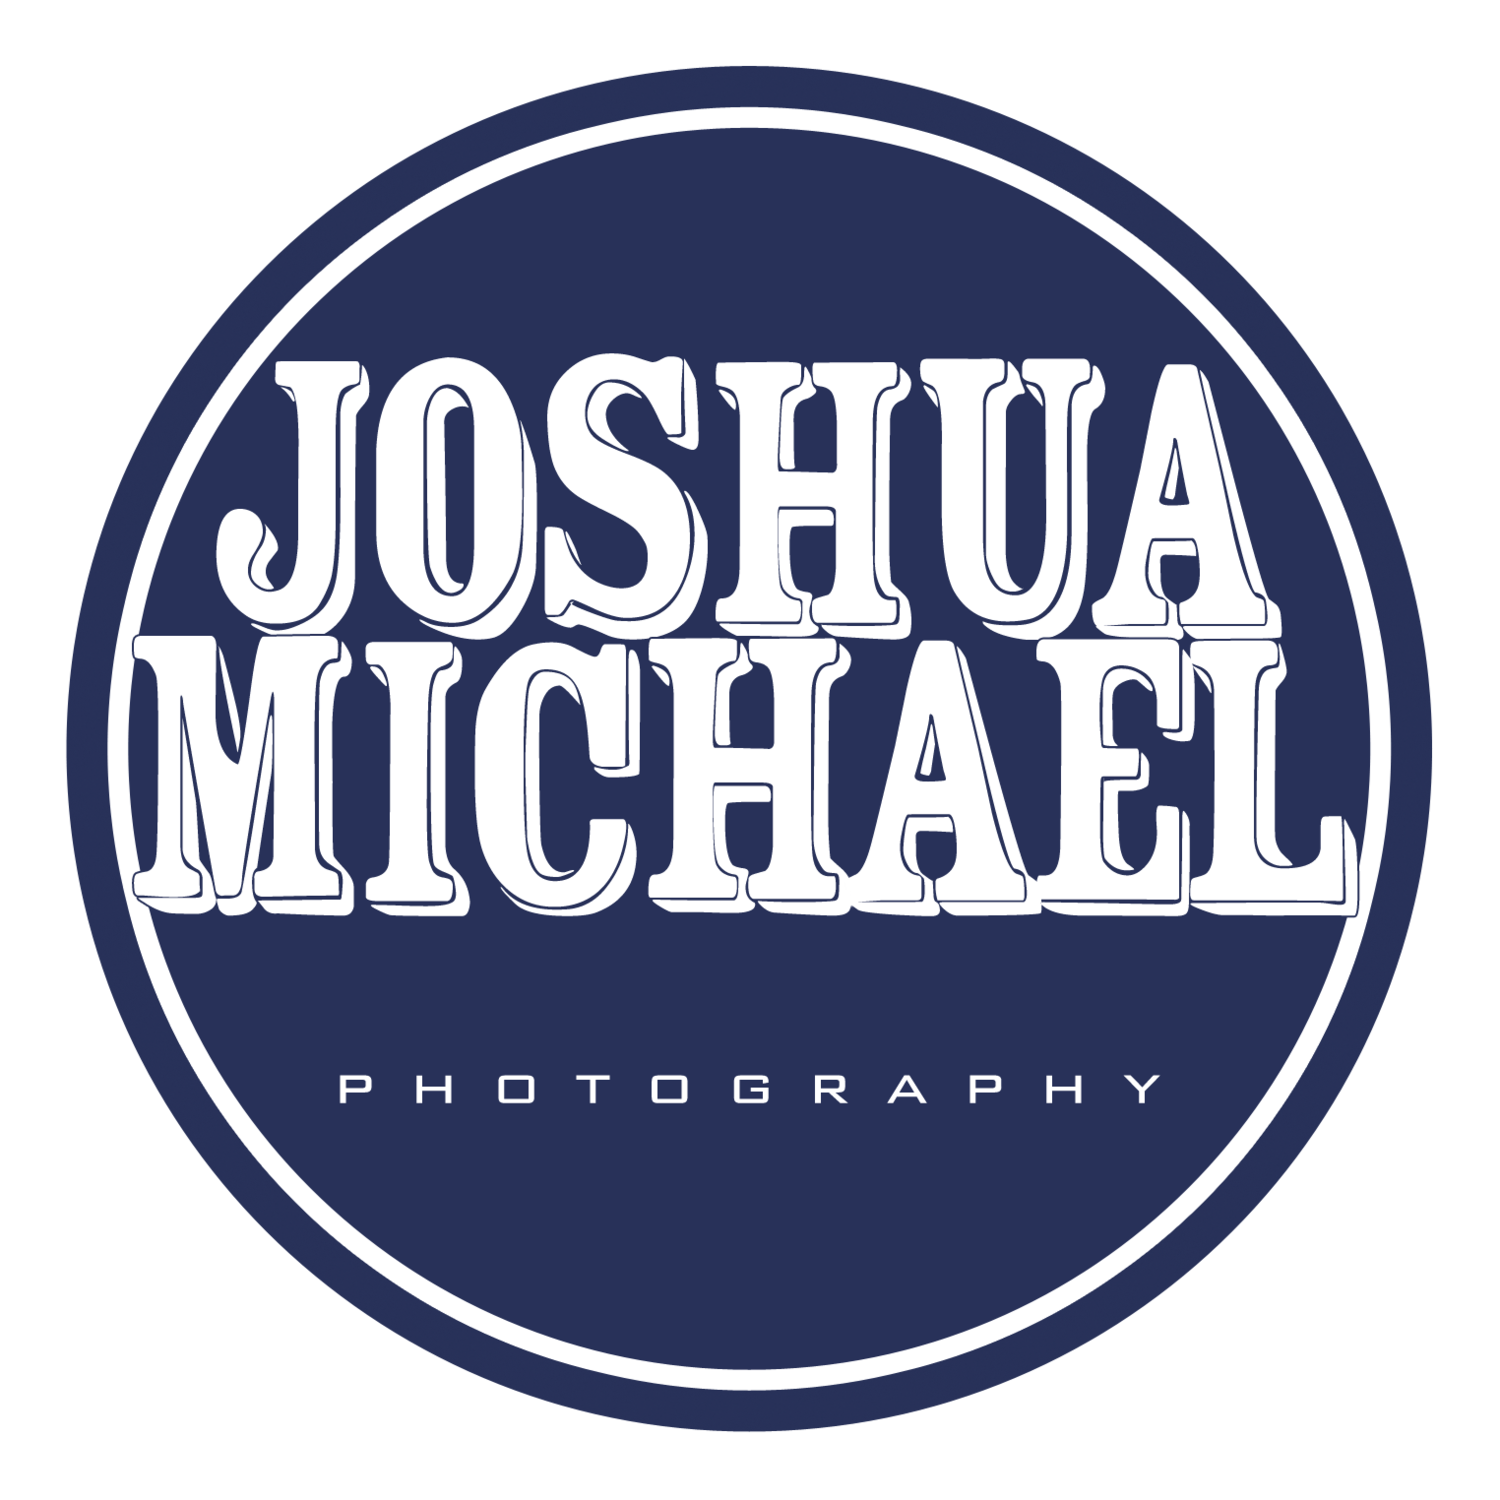 Award Winning San Antonio Wedding Photographer - Joshua Michael